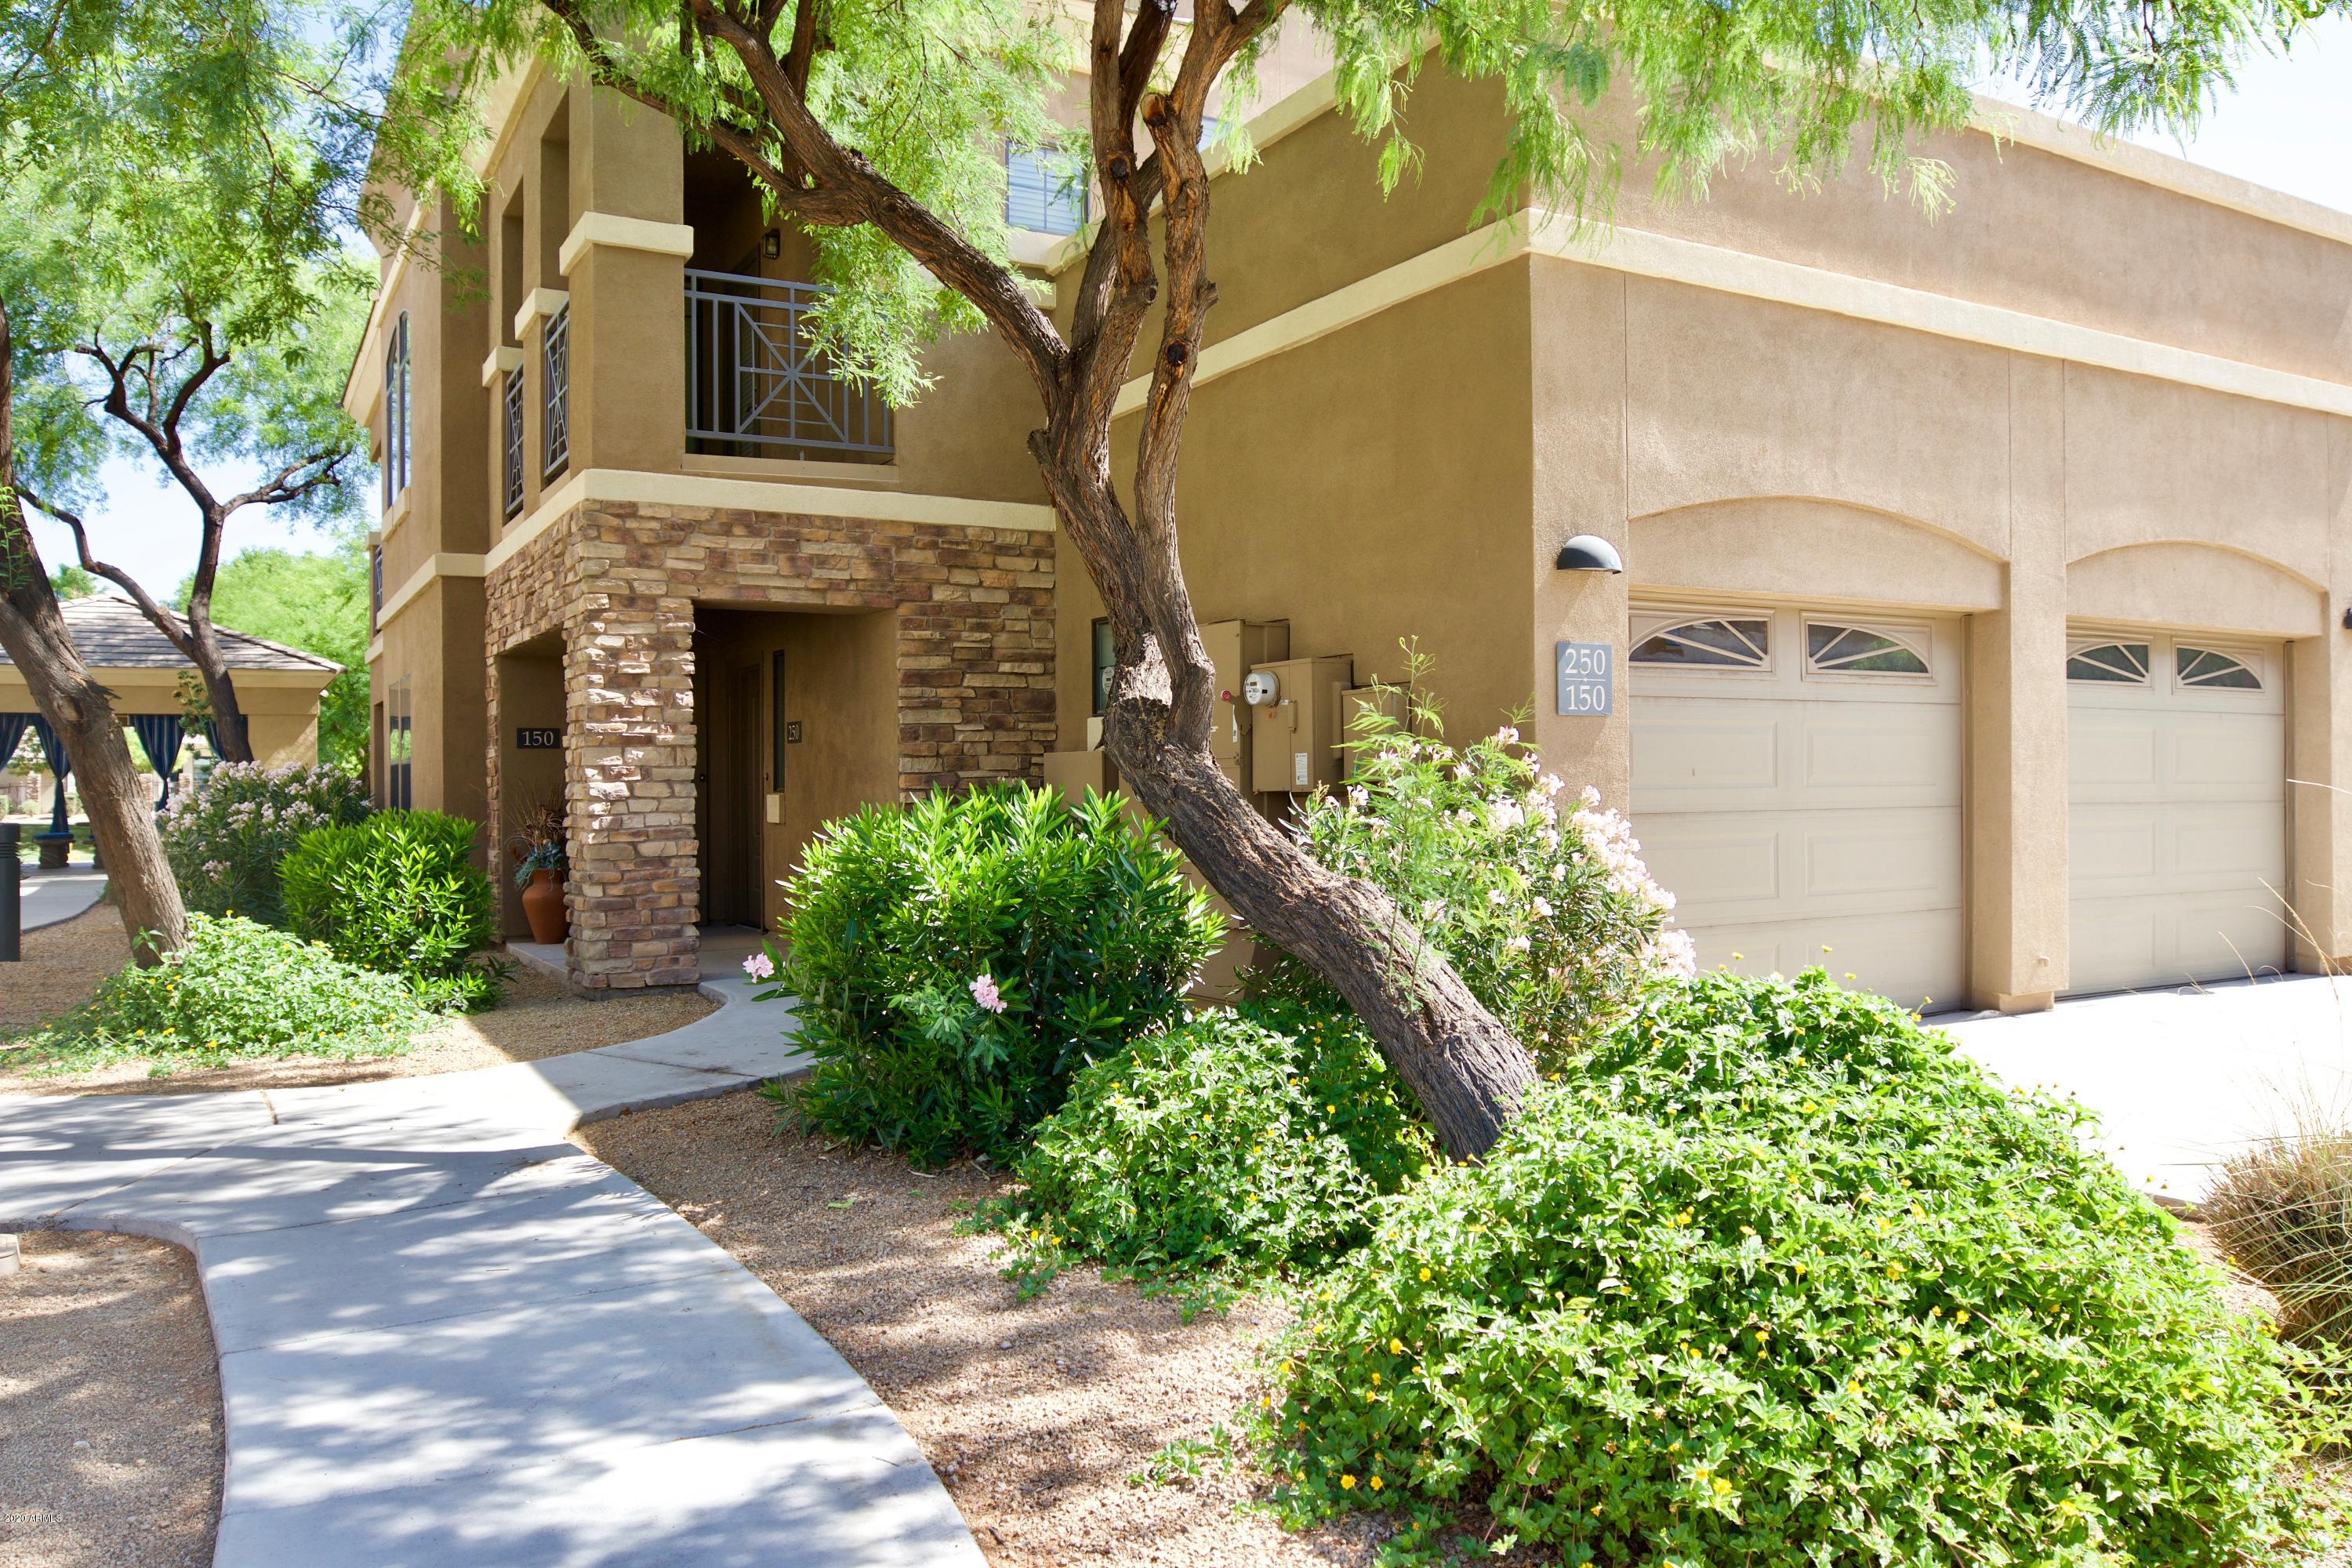 Photo of 16160 S 50TH Street #250, Phoenix, AZ 85048